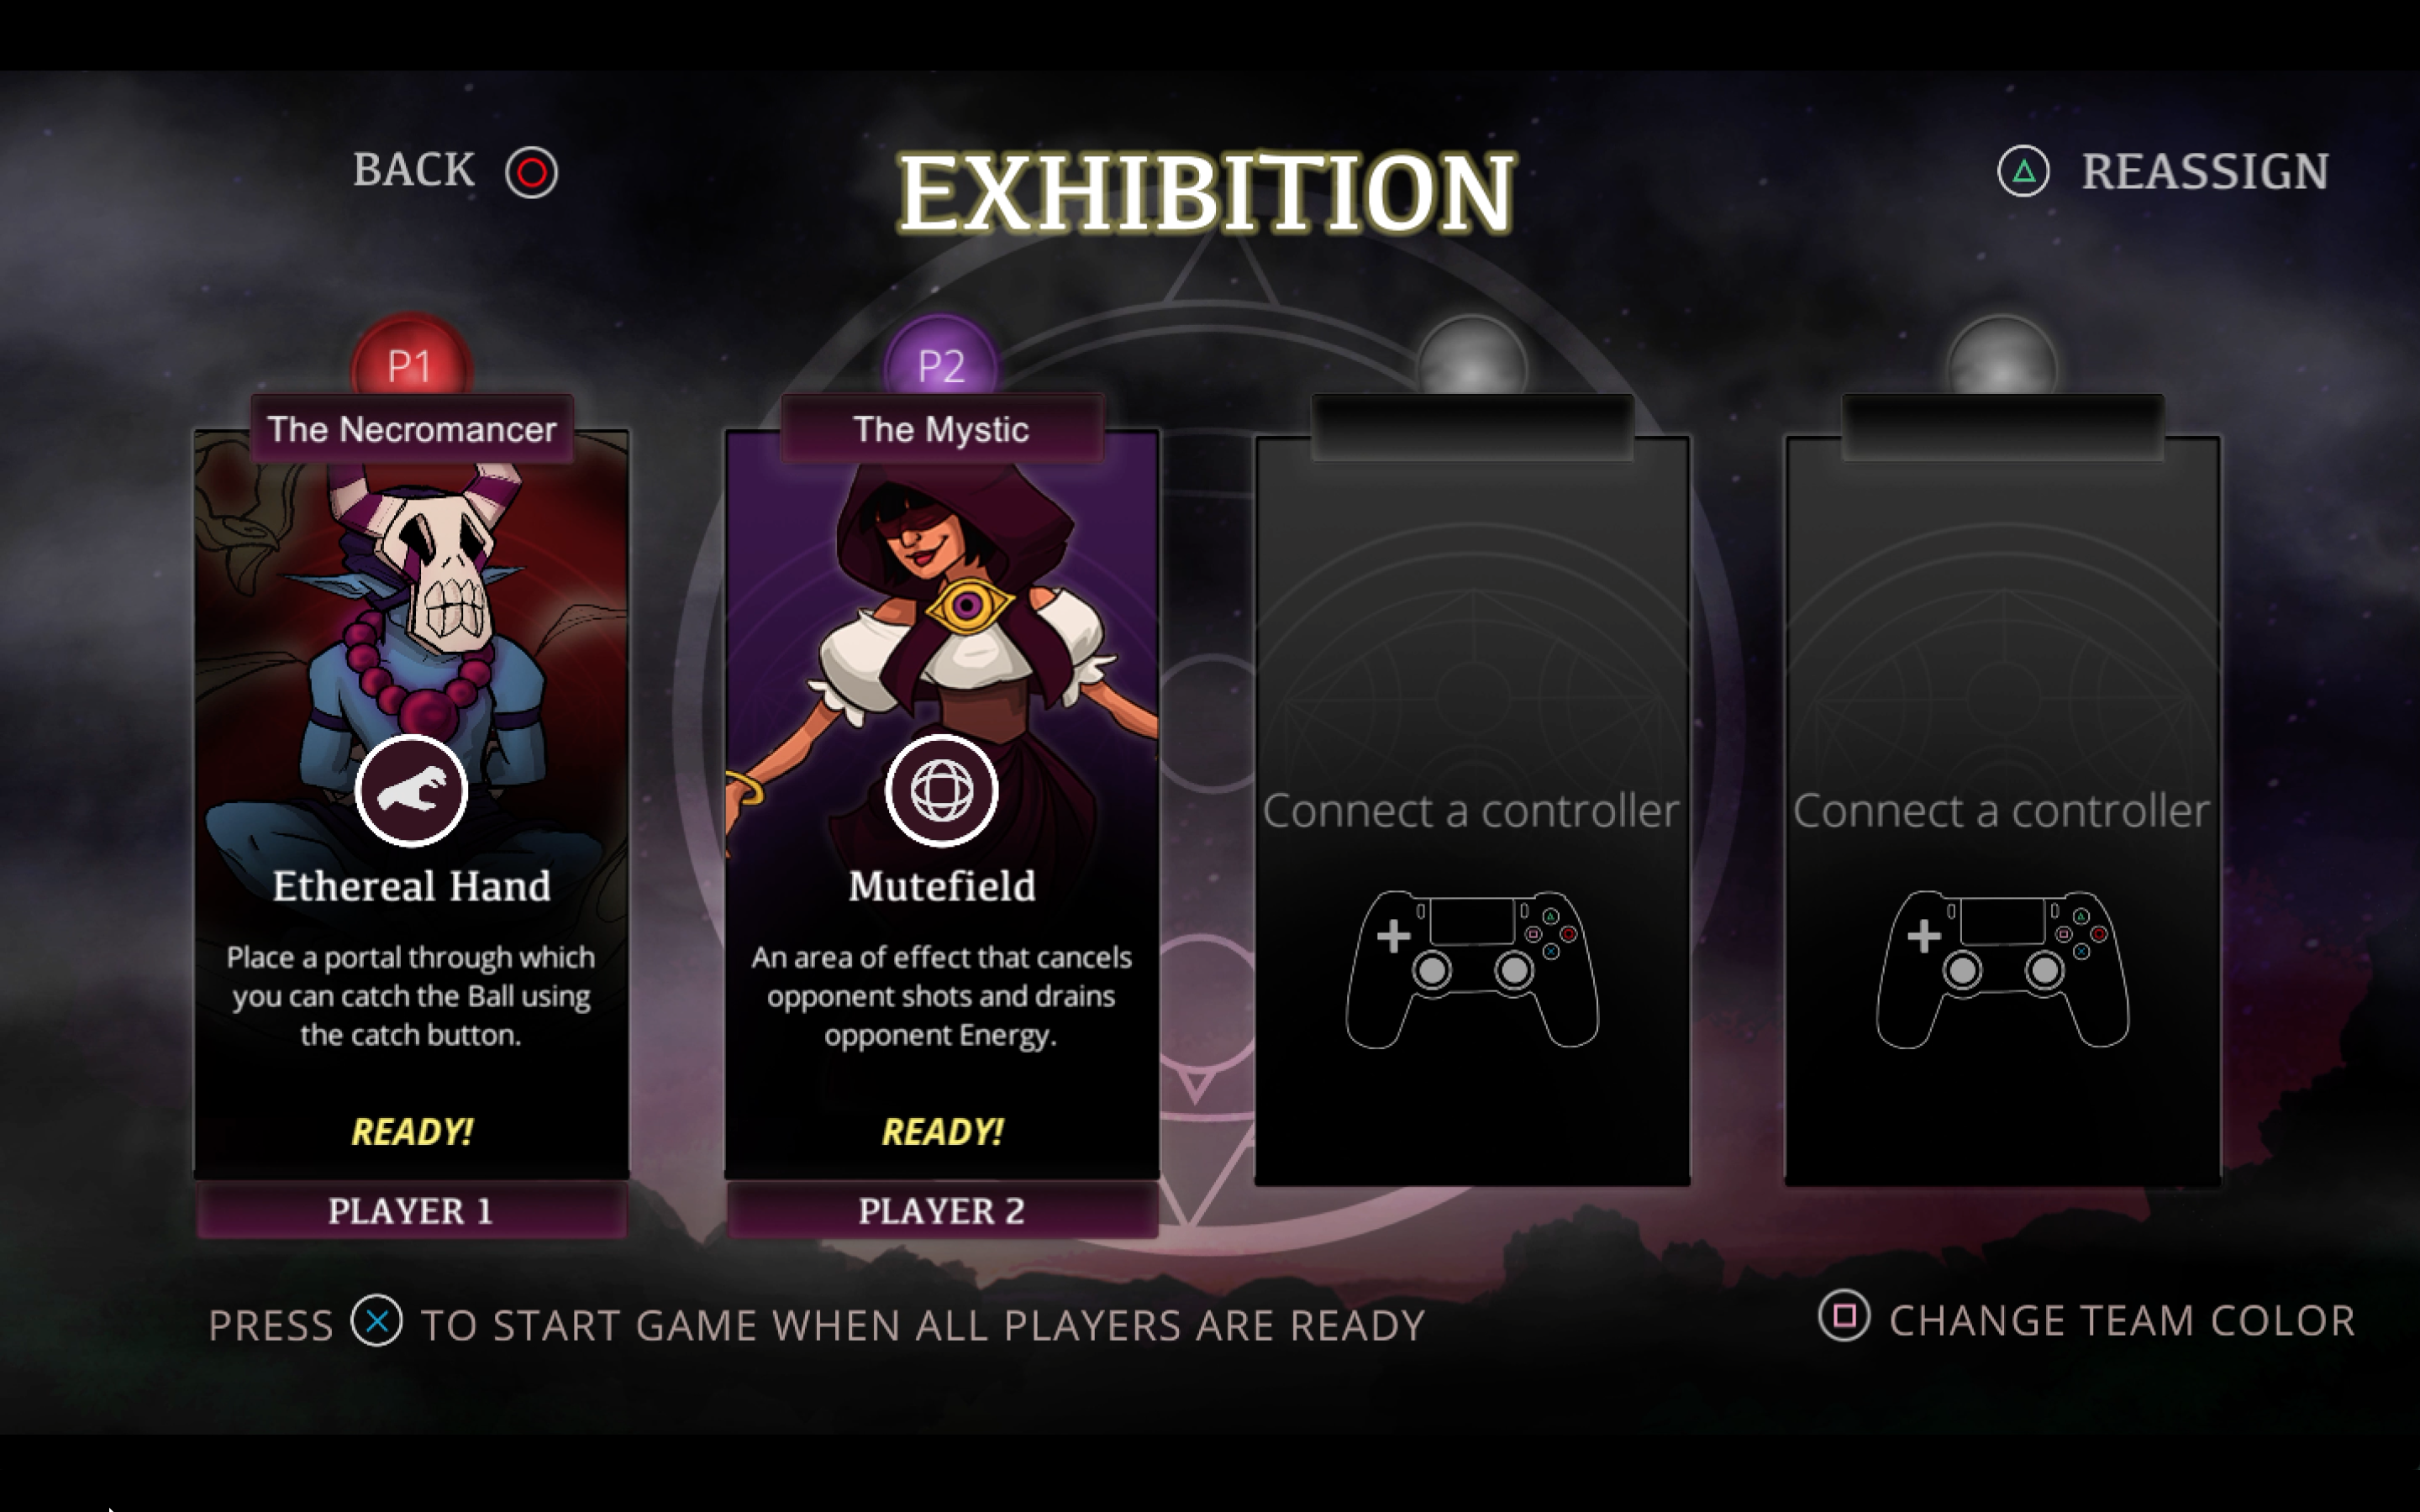 player-selection-screen